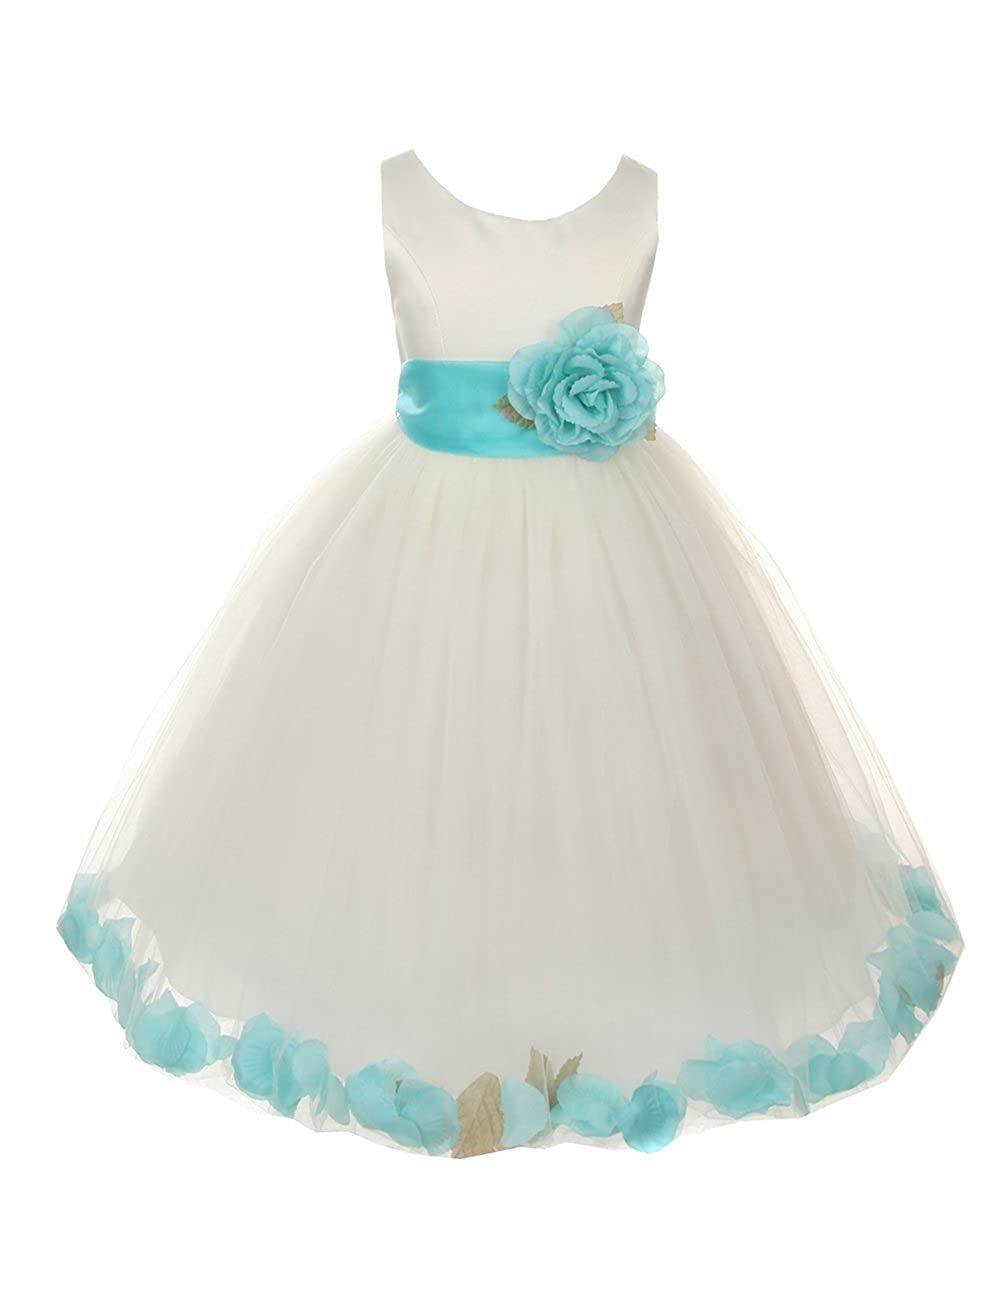 822afc4ddc00 Amazon.com: Cinderella Couture Big Girls' Ivory Tulle Petal Flower Girl  Pageant Dress: Clothing